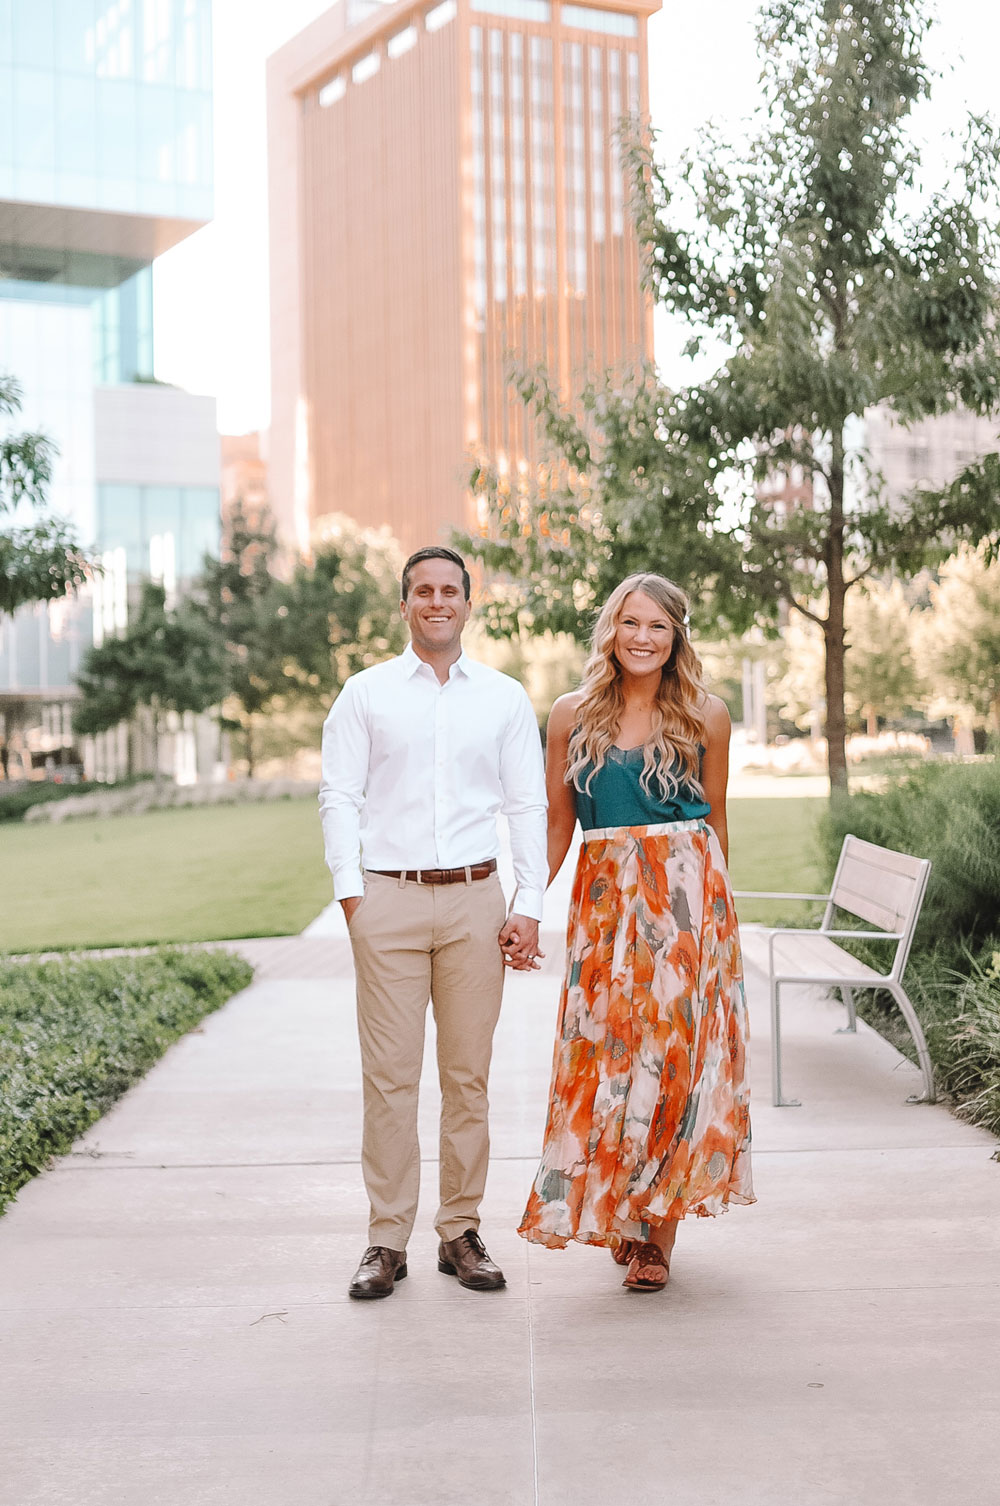 Oklahoma blogger Amanda Martin of Amanda's OK shares her four year wedding anniversary photoshoot